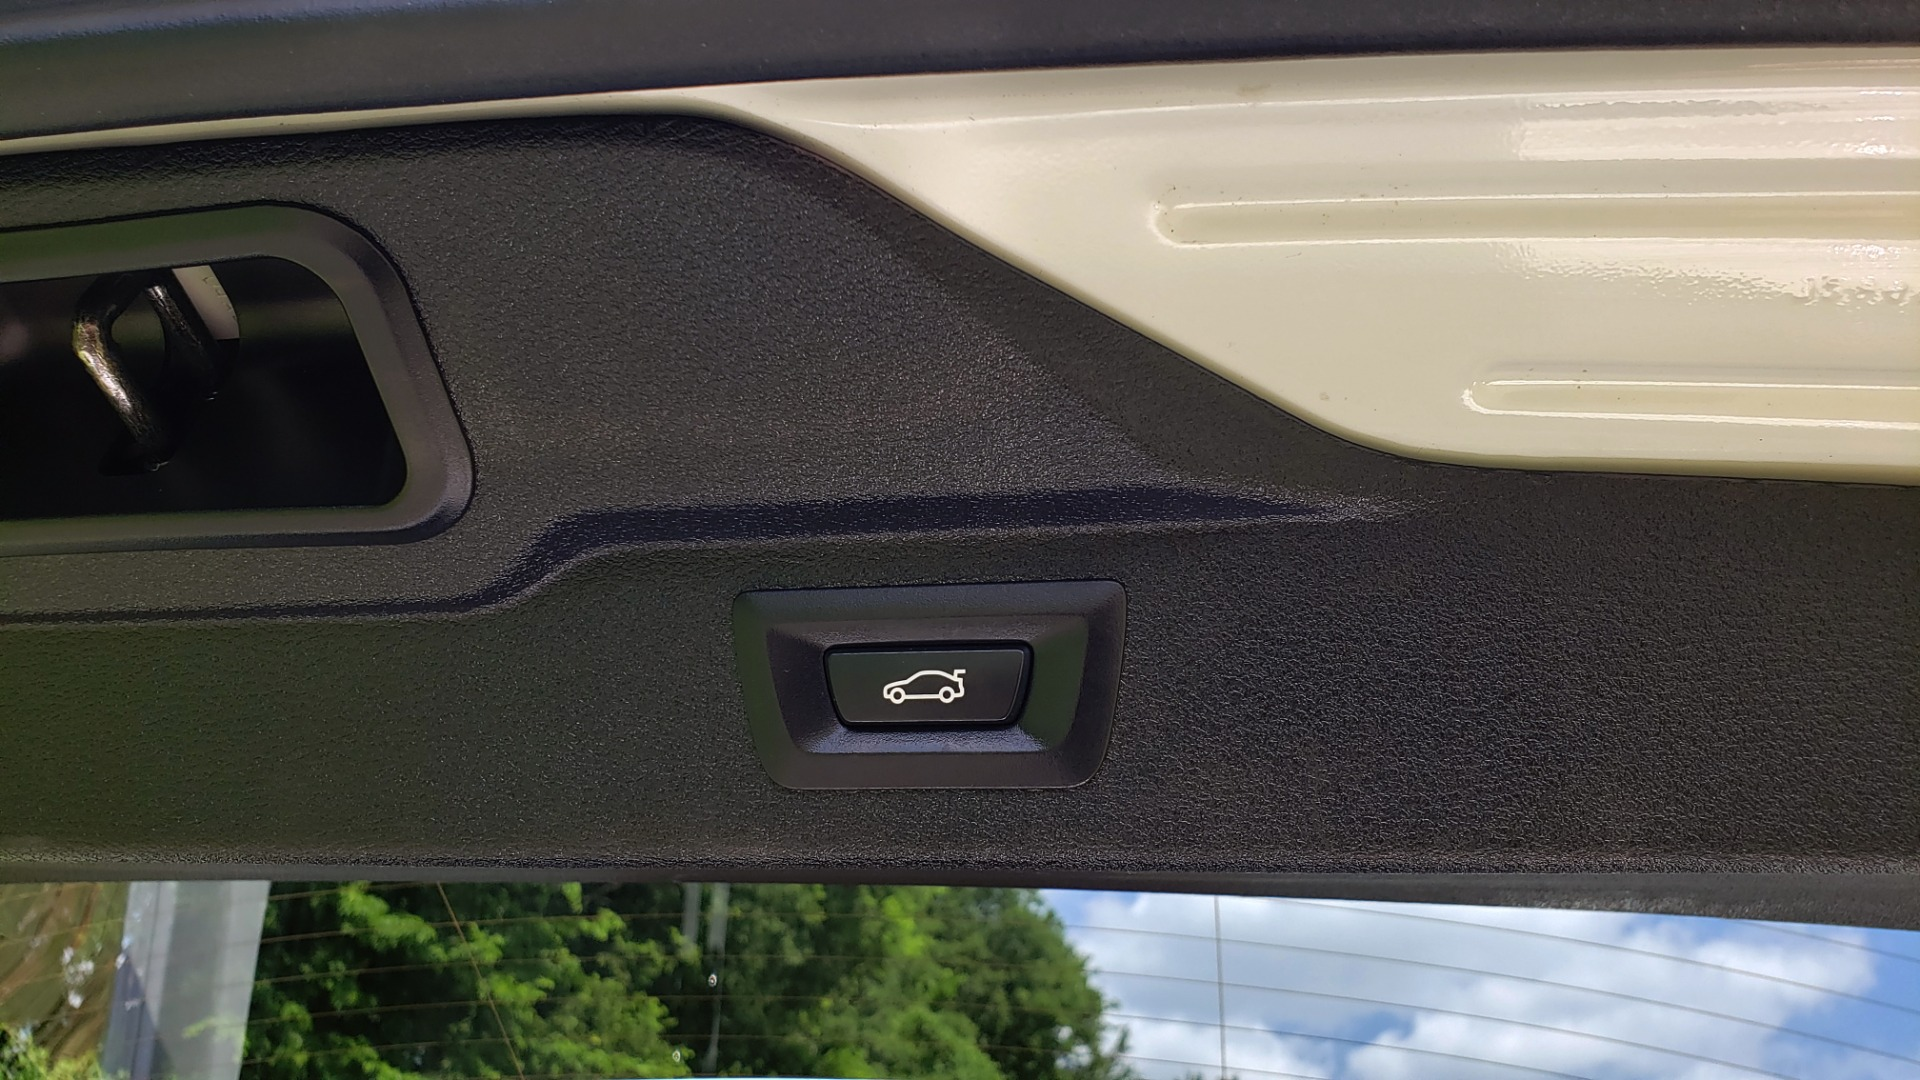 Used 2017 BMW X5 XDRIVE35I / NAV / SUNROOF / RUNNING BOARDS / REARVIEW for sale $33,995 at Formula Imports in Charlotte NC 28227 30